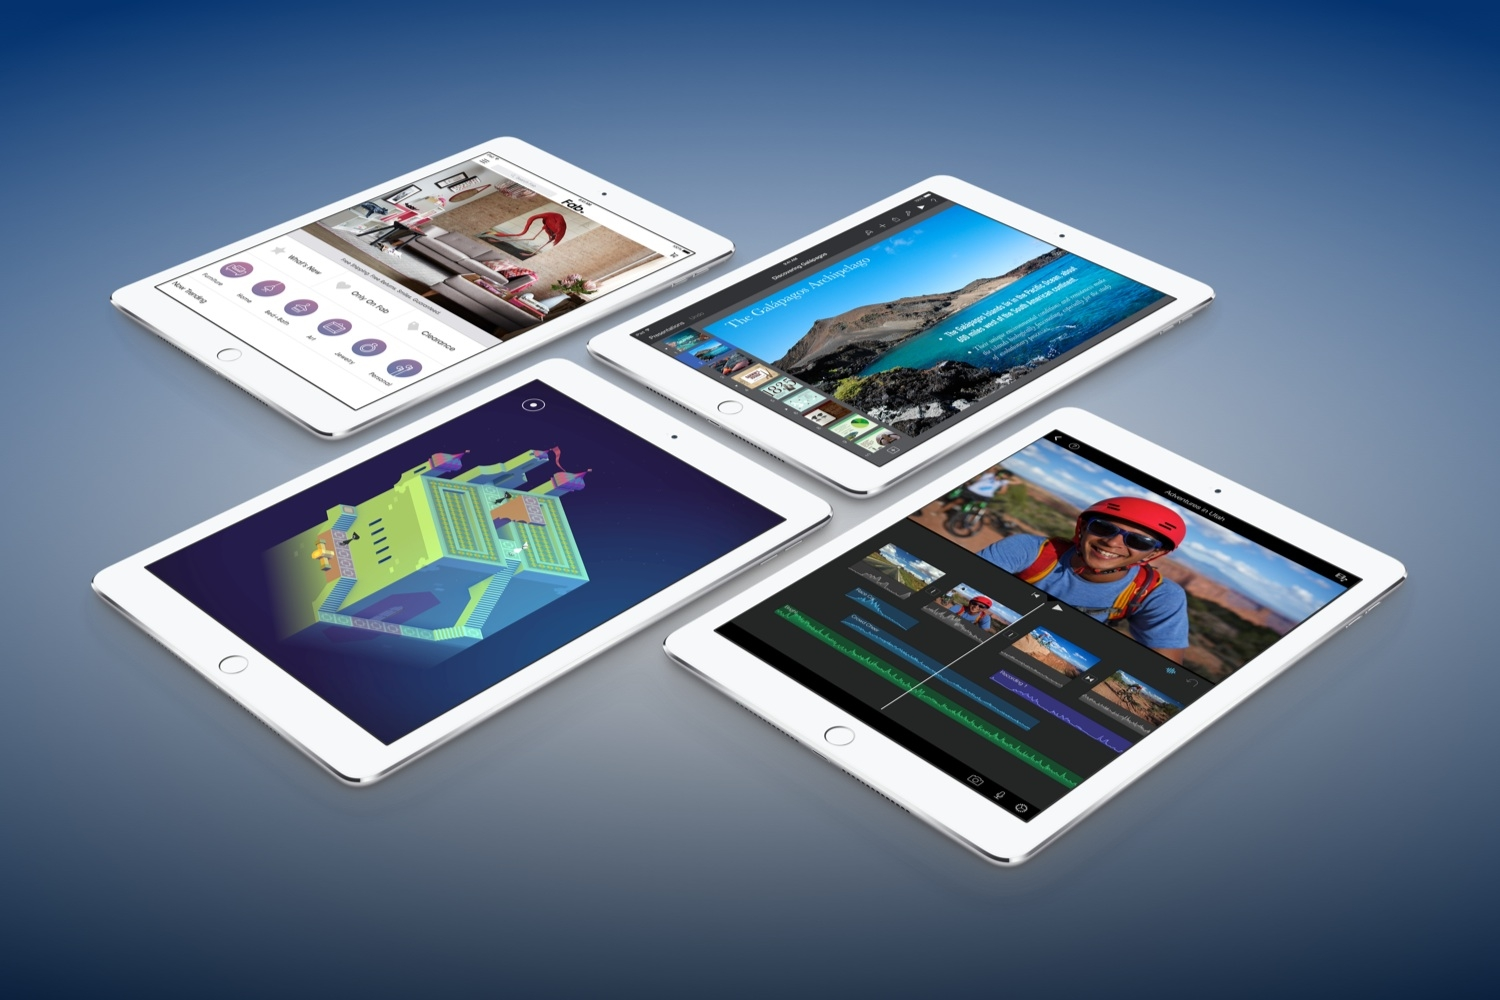 5 Reasons Why The iPad Air 2 Is Still The World's Best Tablet